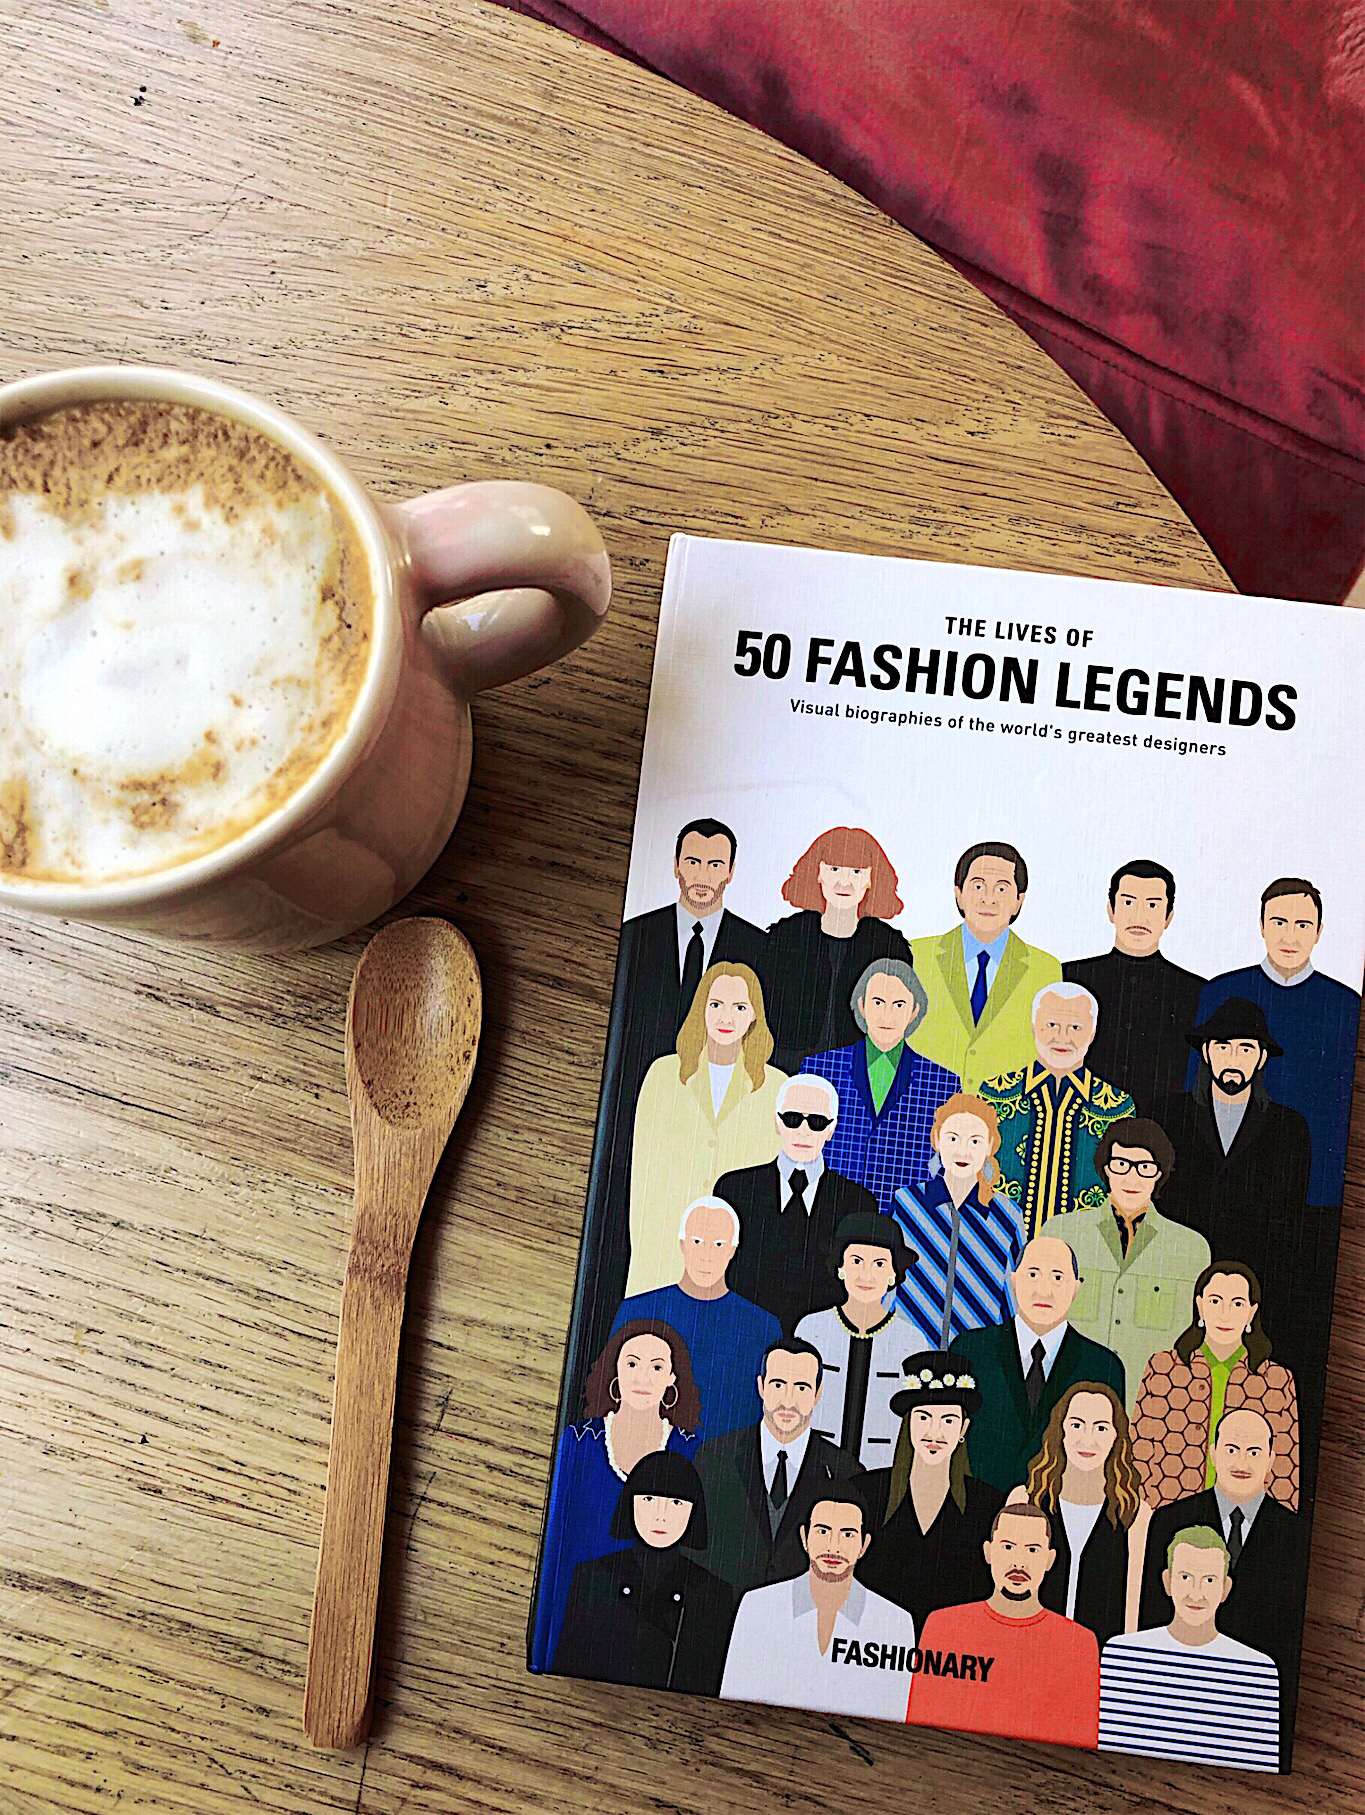 50 Fashion Legends book on the table